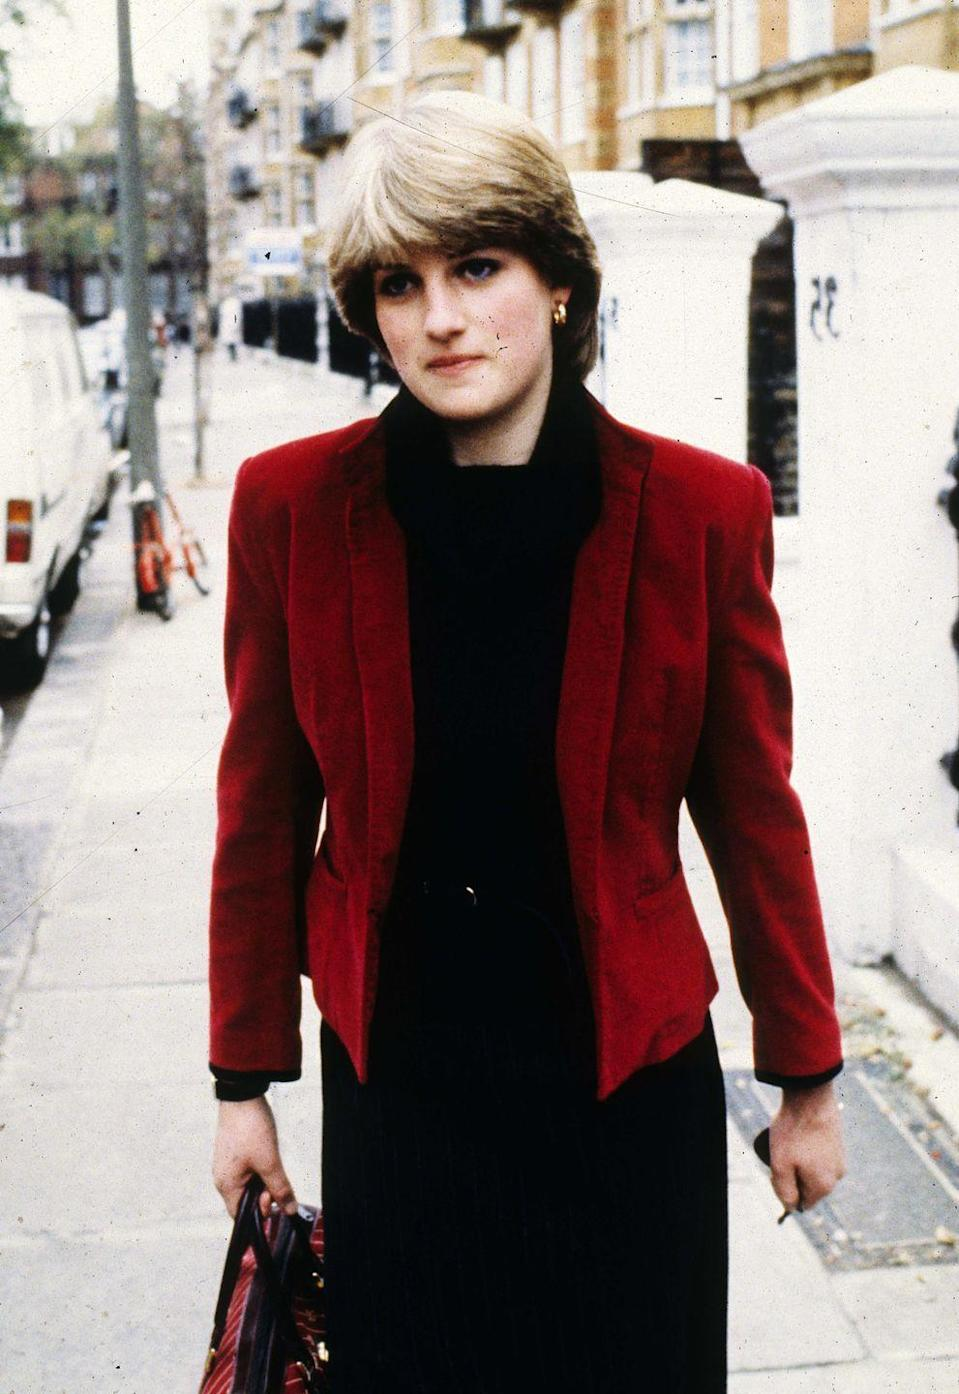 <p>In a red velvet blazer, pinstripe skirt, and black cowl-neck jumper, with small gold hoop earrings and structured bag on the streets of London. </p>